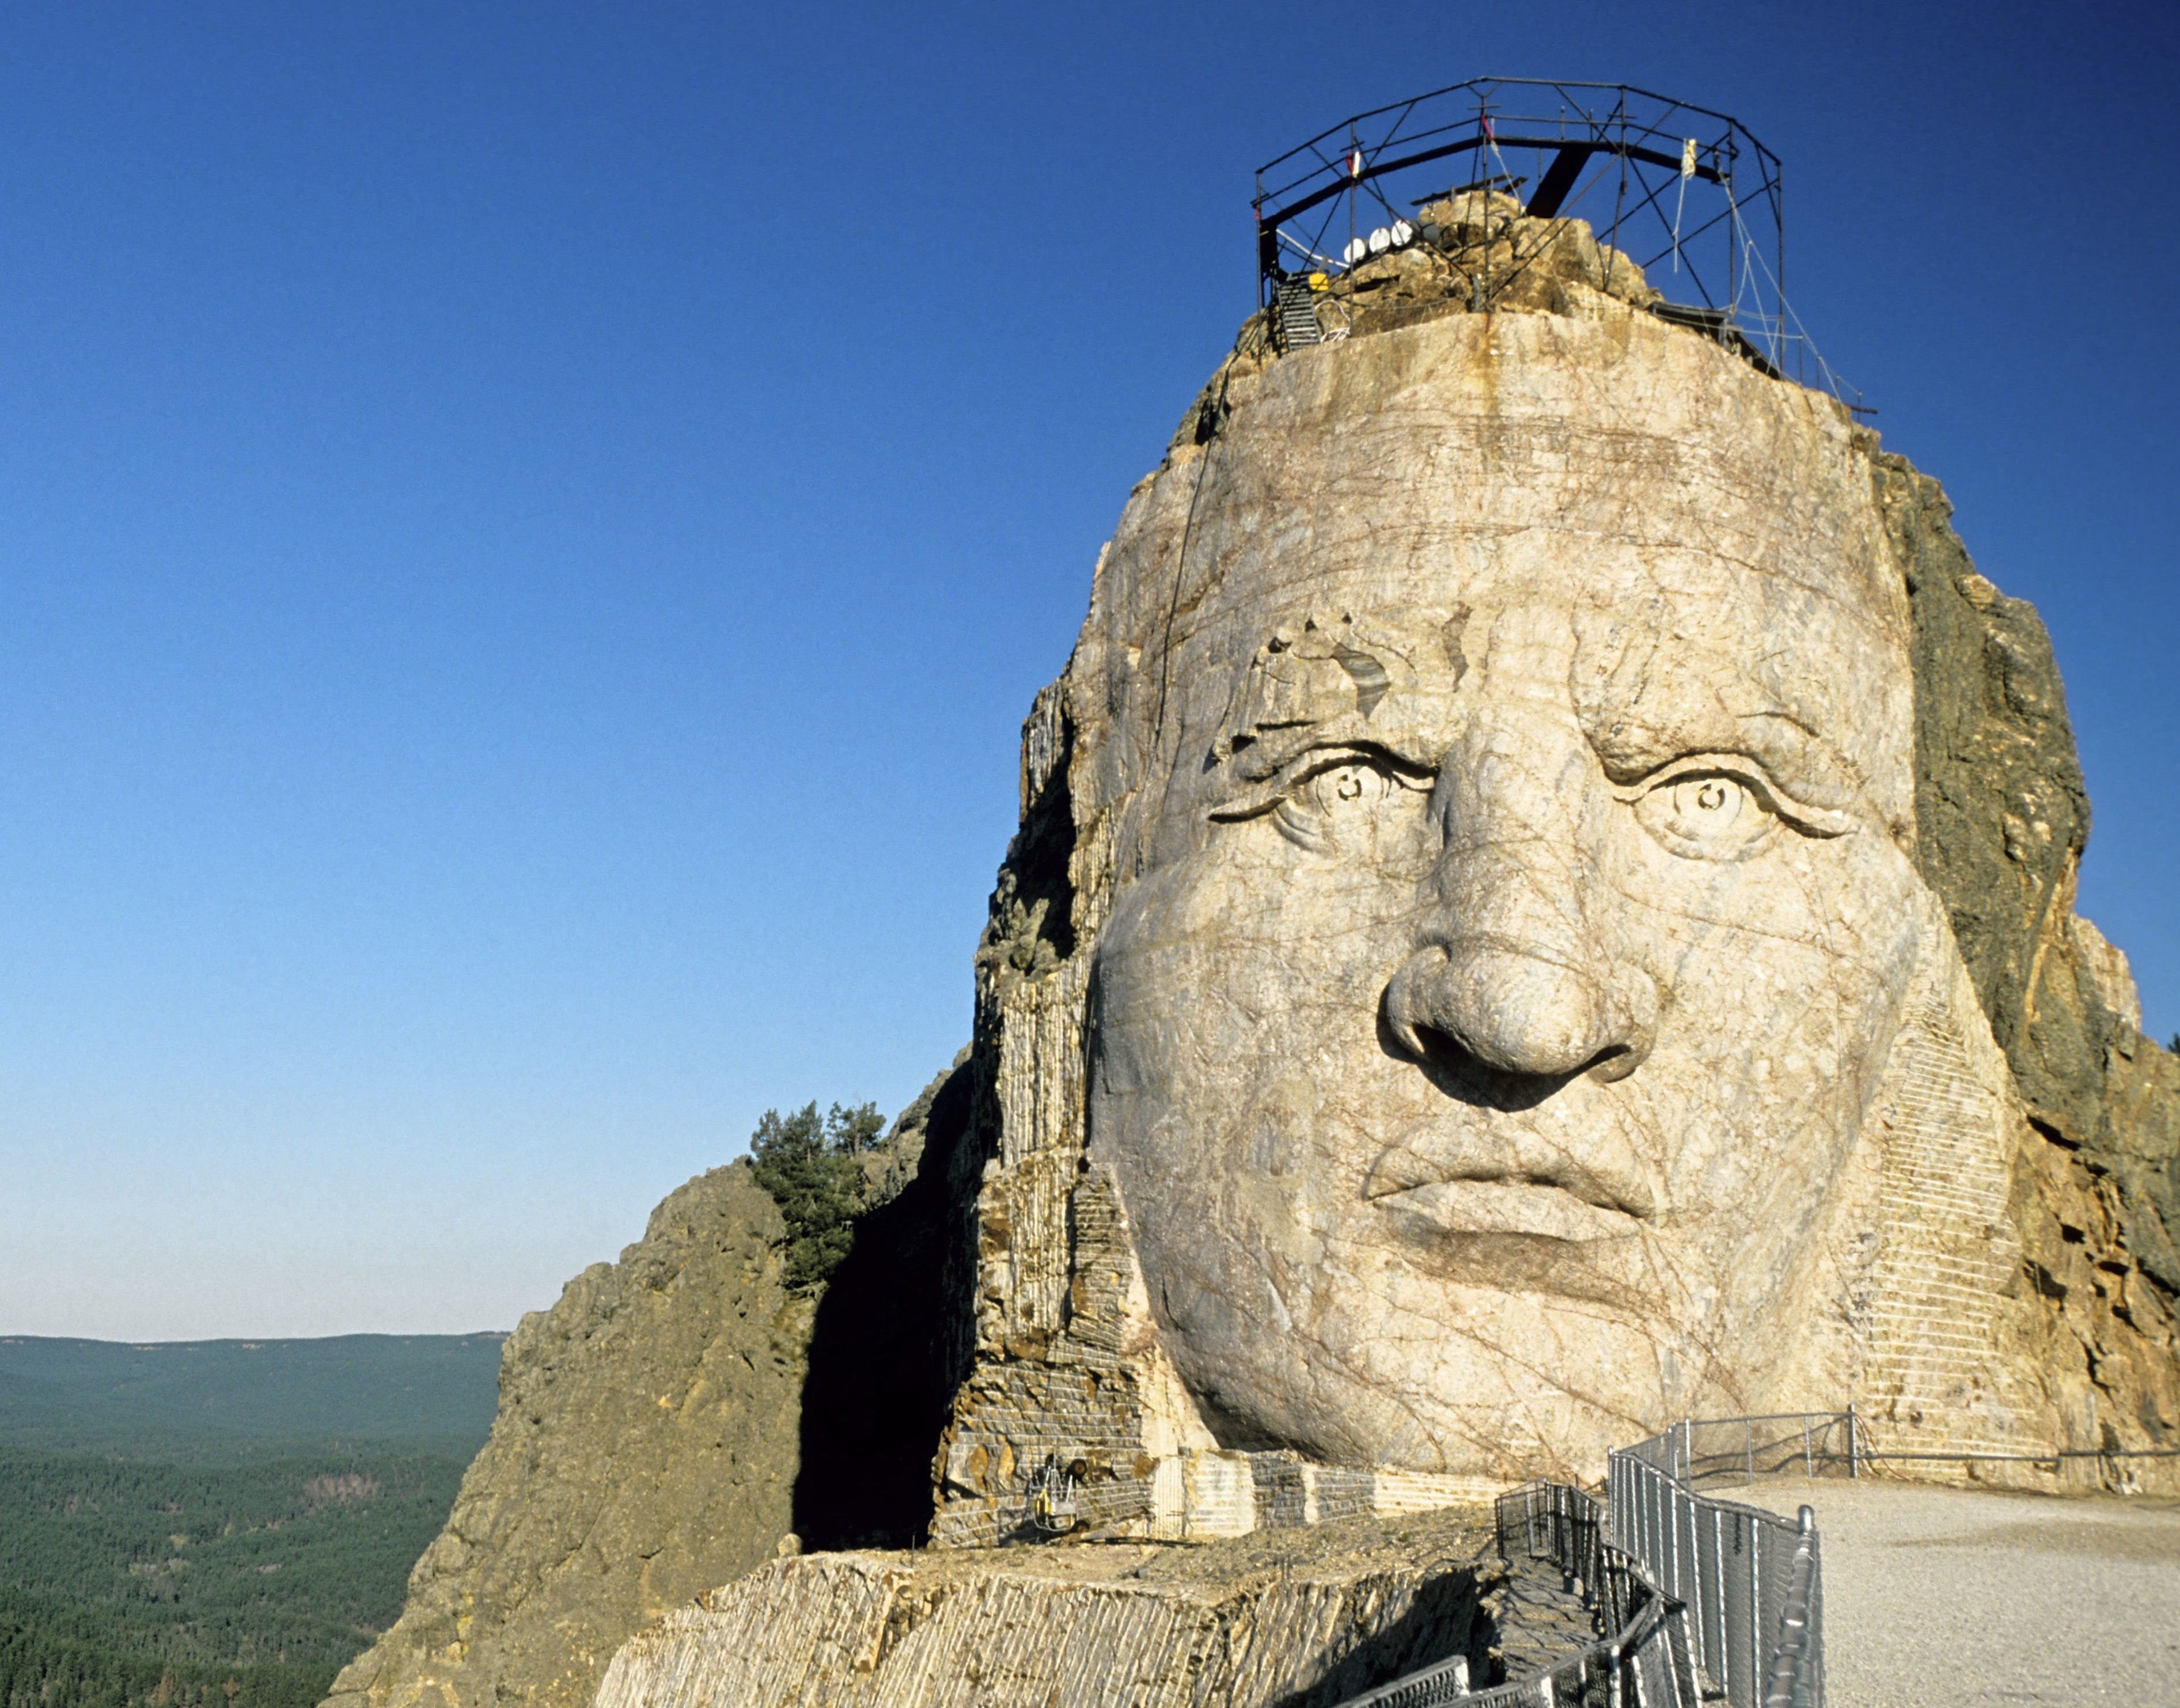 Mandatory Credit: Photo by Patrick Frilet/Shutterstock (435790e) The sculpture of the warrior Crazy Horse, who led the Lakota tribe at the Battle of Little Bighorn in 1876. The Crazy Horse Memorial monument was carved out of Thunderhead Mountain on land considered sacred by some Native Americans and its sculpturing begun in 1948 by sculptor Korczak Ziolkowski. South Dakota, America. SOUTH DAKOTA, AMERICA